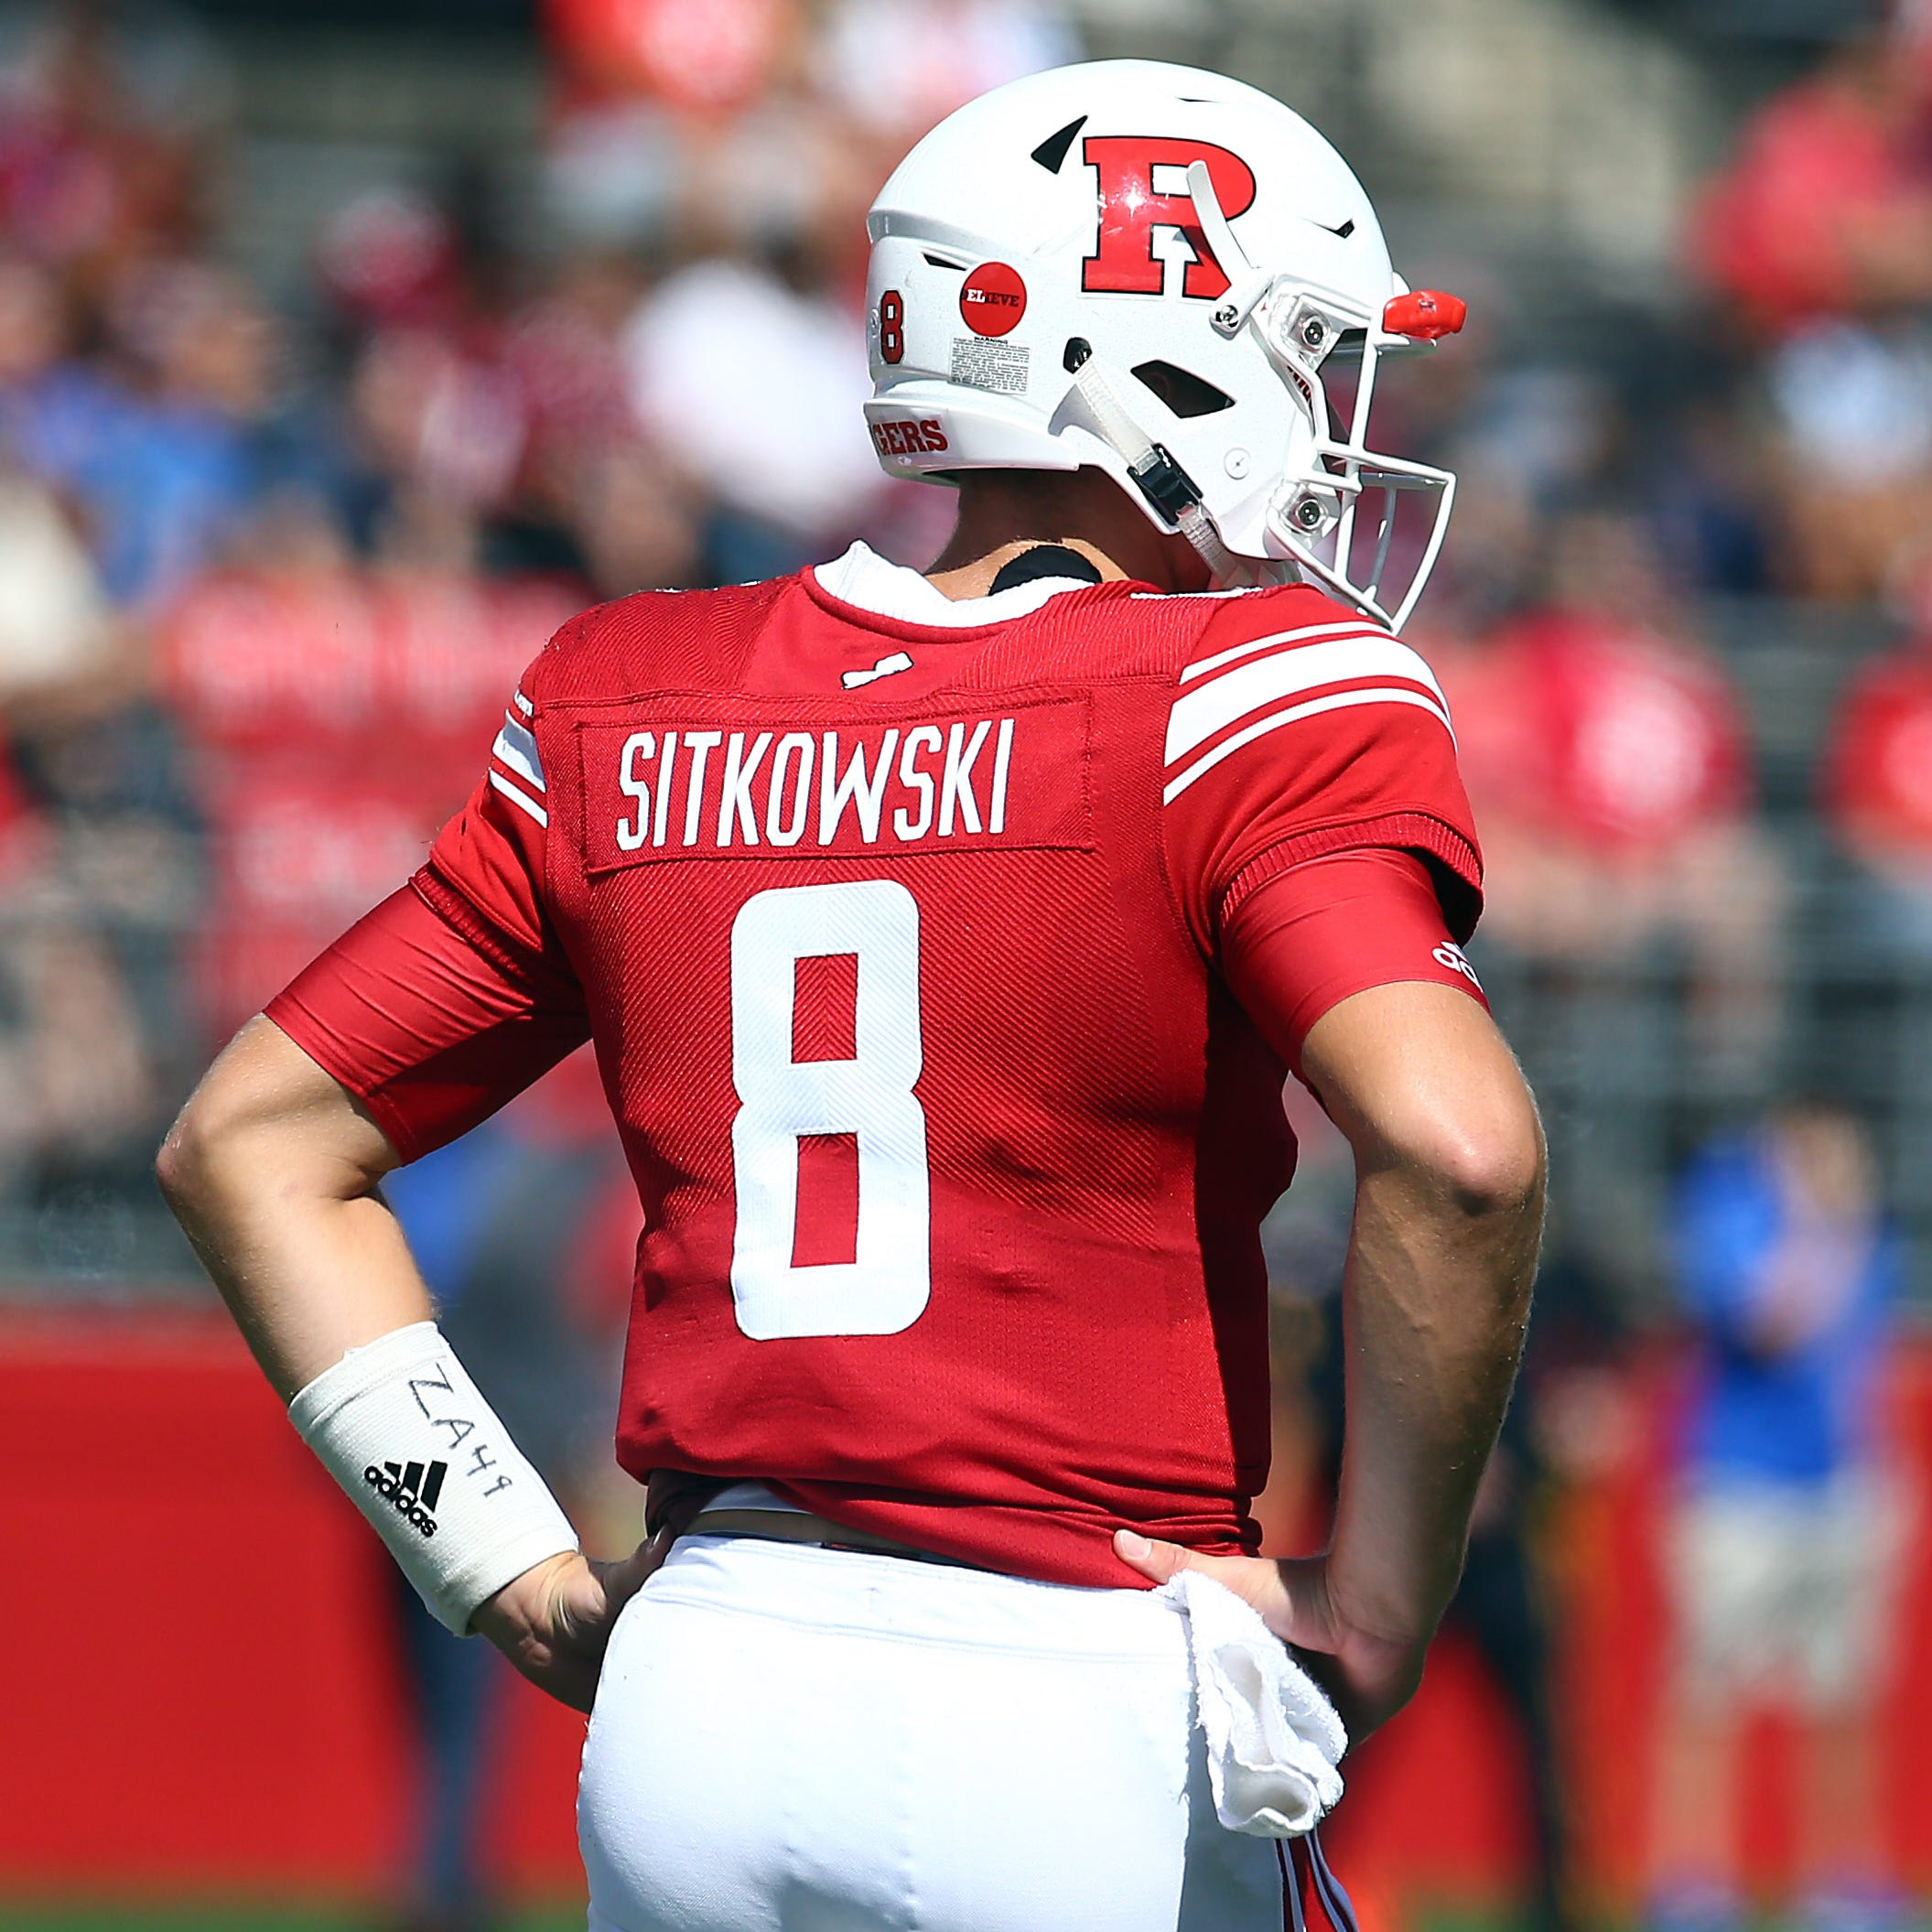 Rutgers football: Art Sitkowski starting still makes sense